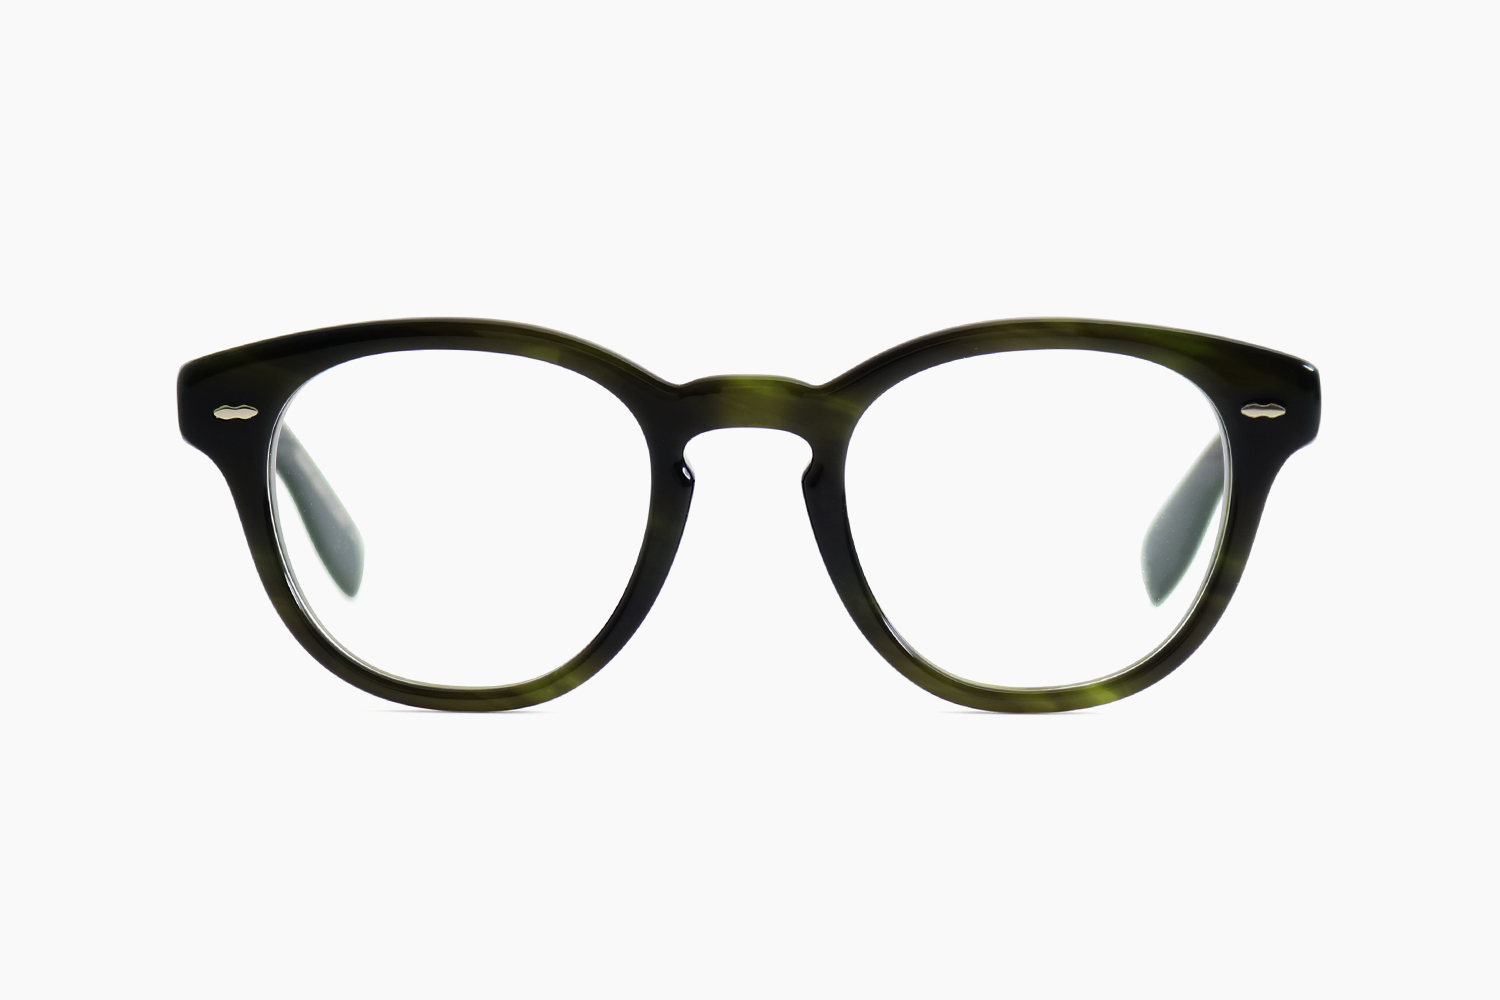 CARY GRANT - EMERARD BARK(1680)|OLIVER PEOPLES